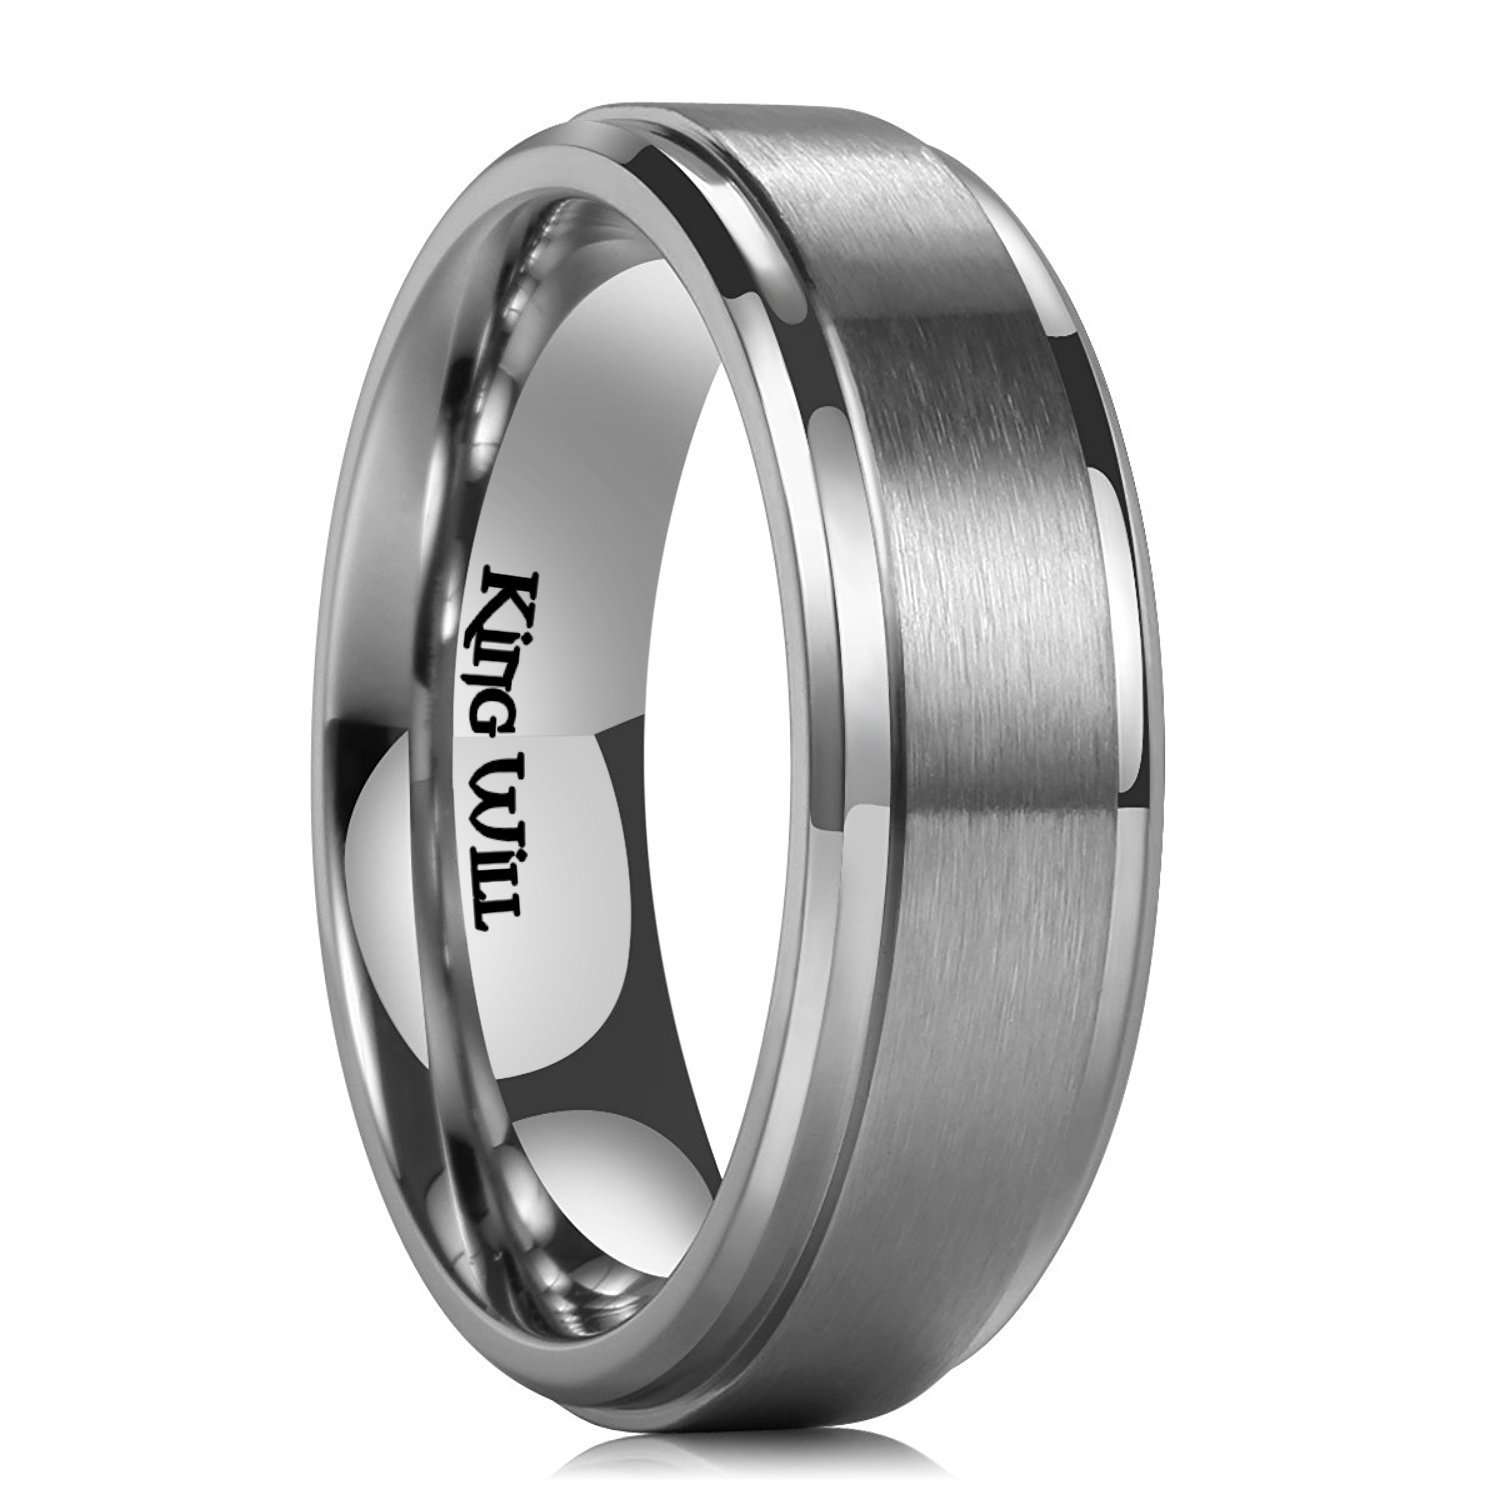 King Will Basic 7mm Mens Titanium Ring Wedding Band Brushed Matte Finished Engagement Ring Comfort Fit 9.5